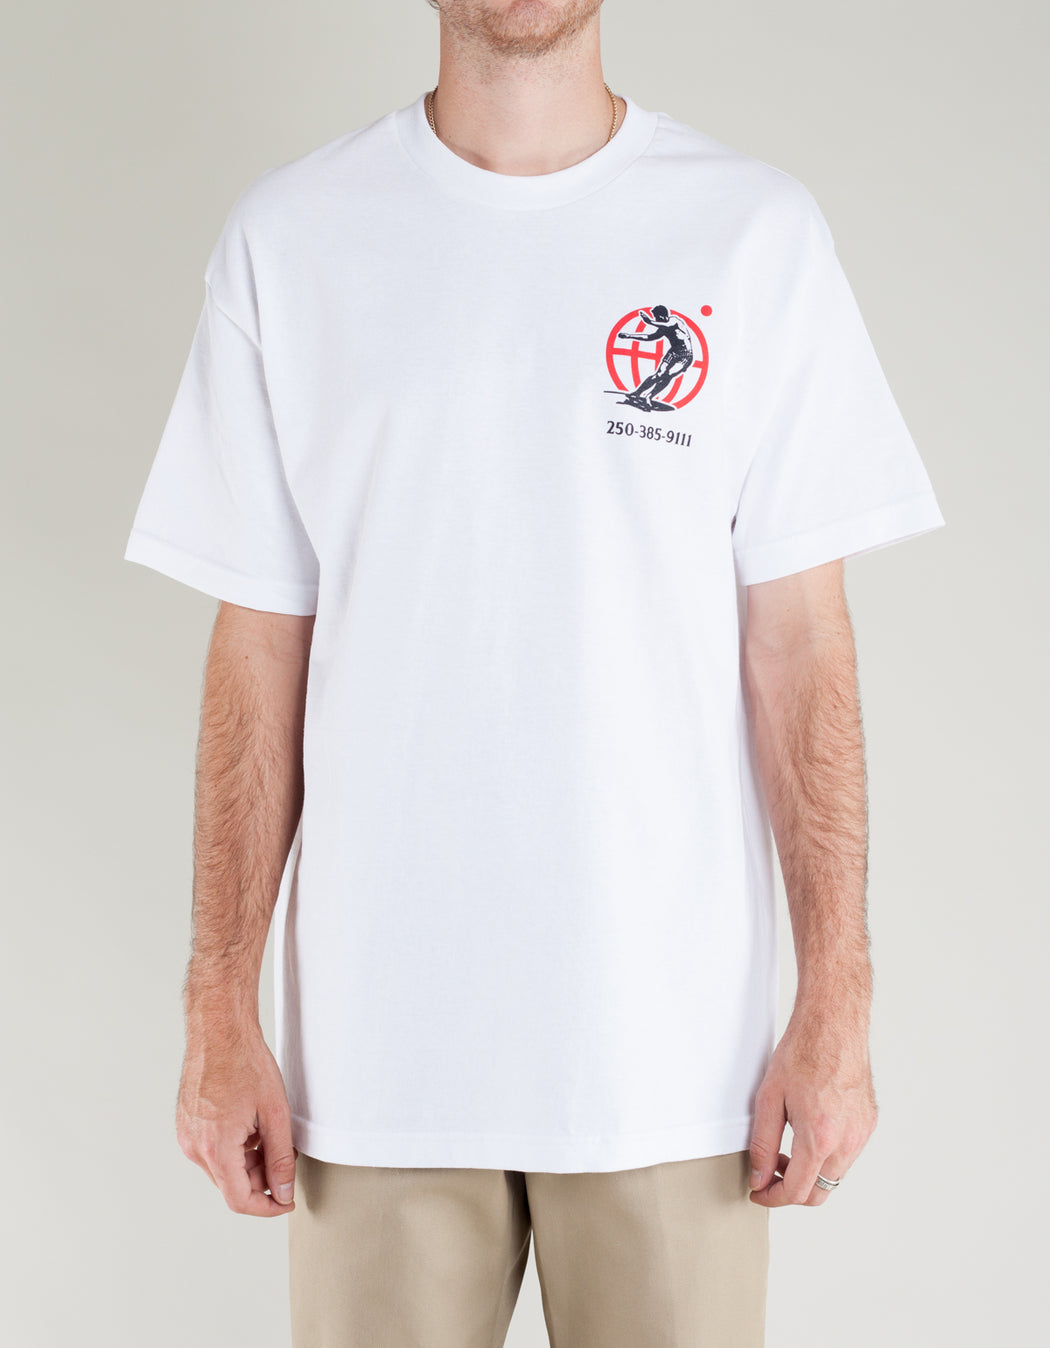 Goodnews Kanji Tee White